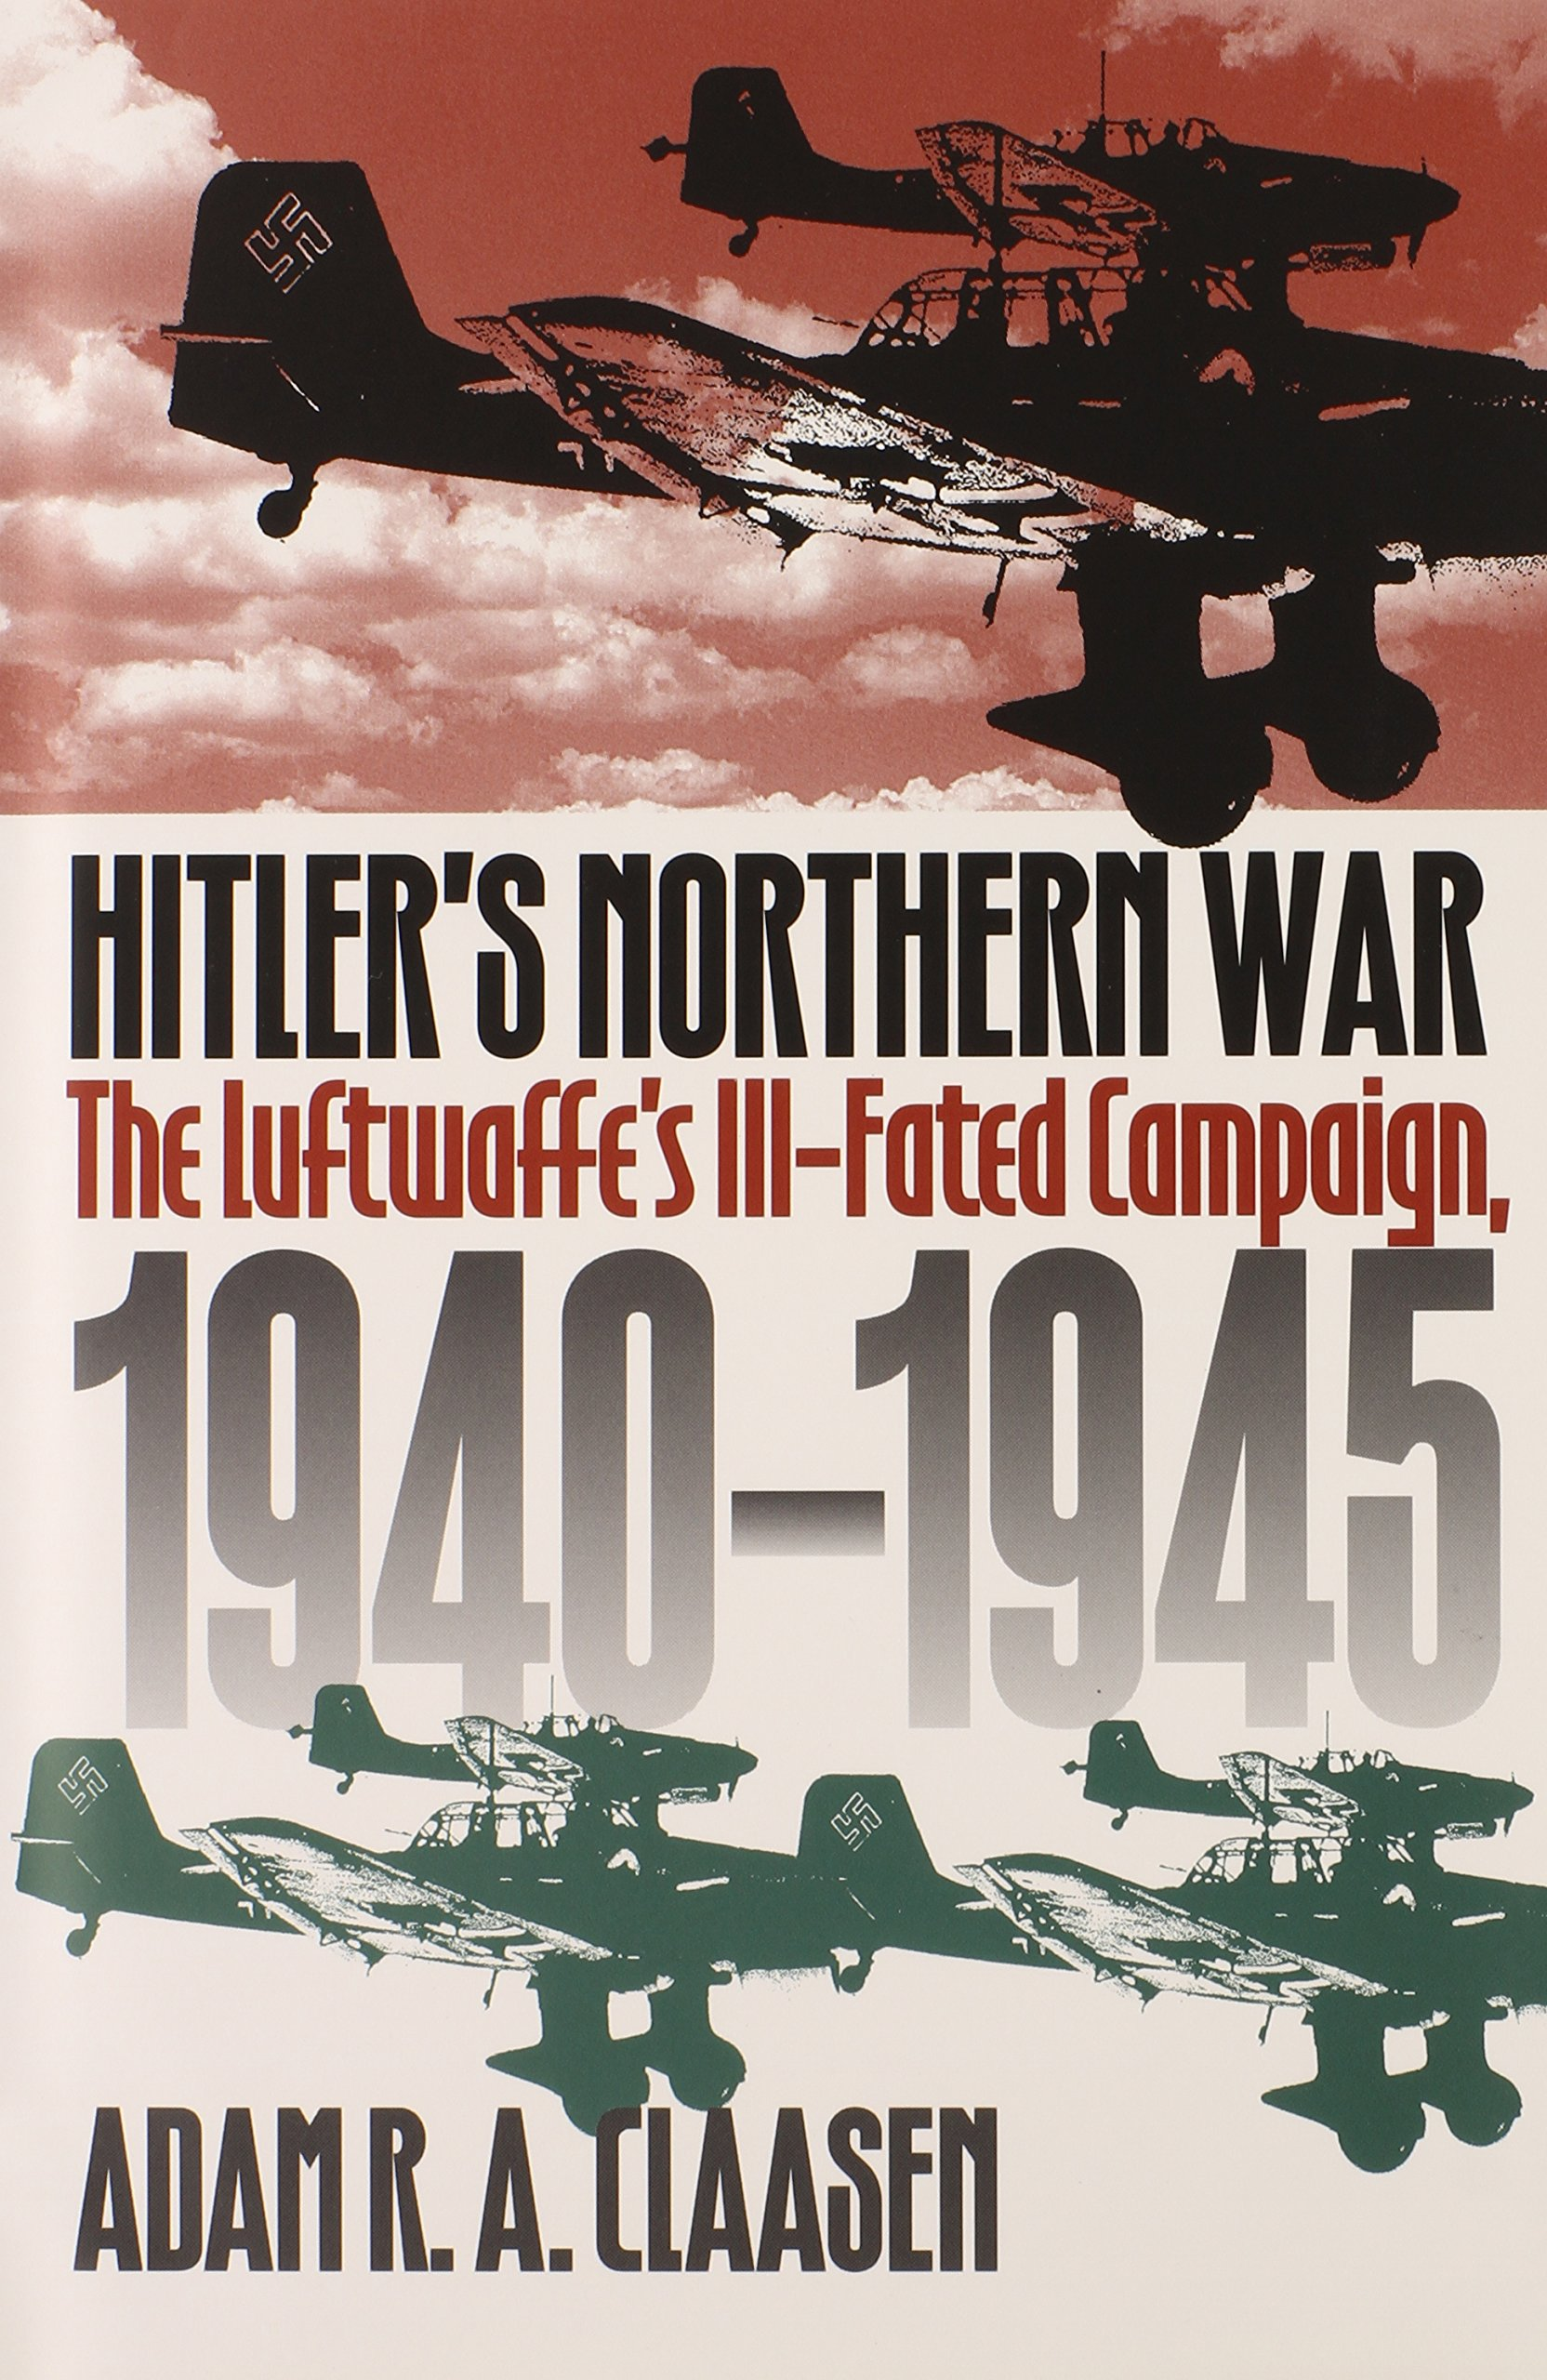 Hitler's Northern War: The Luftwaffe's Ill-Fated Campaign, 1940-1945 PDF